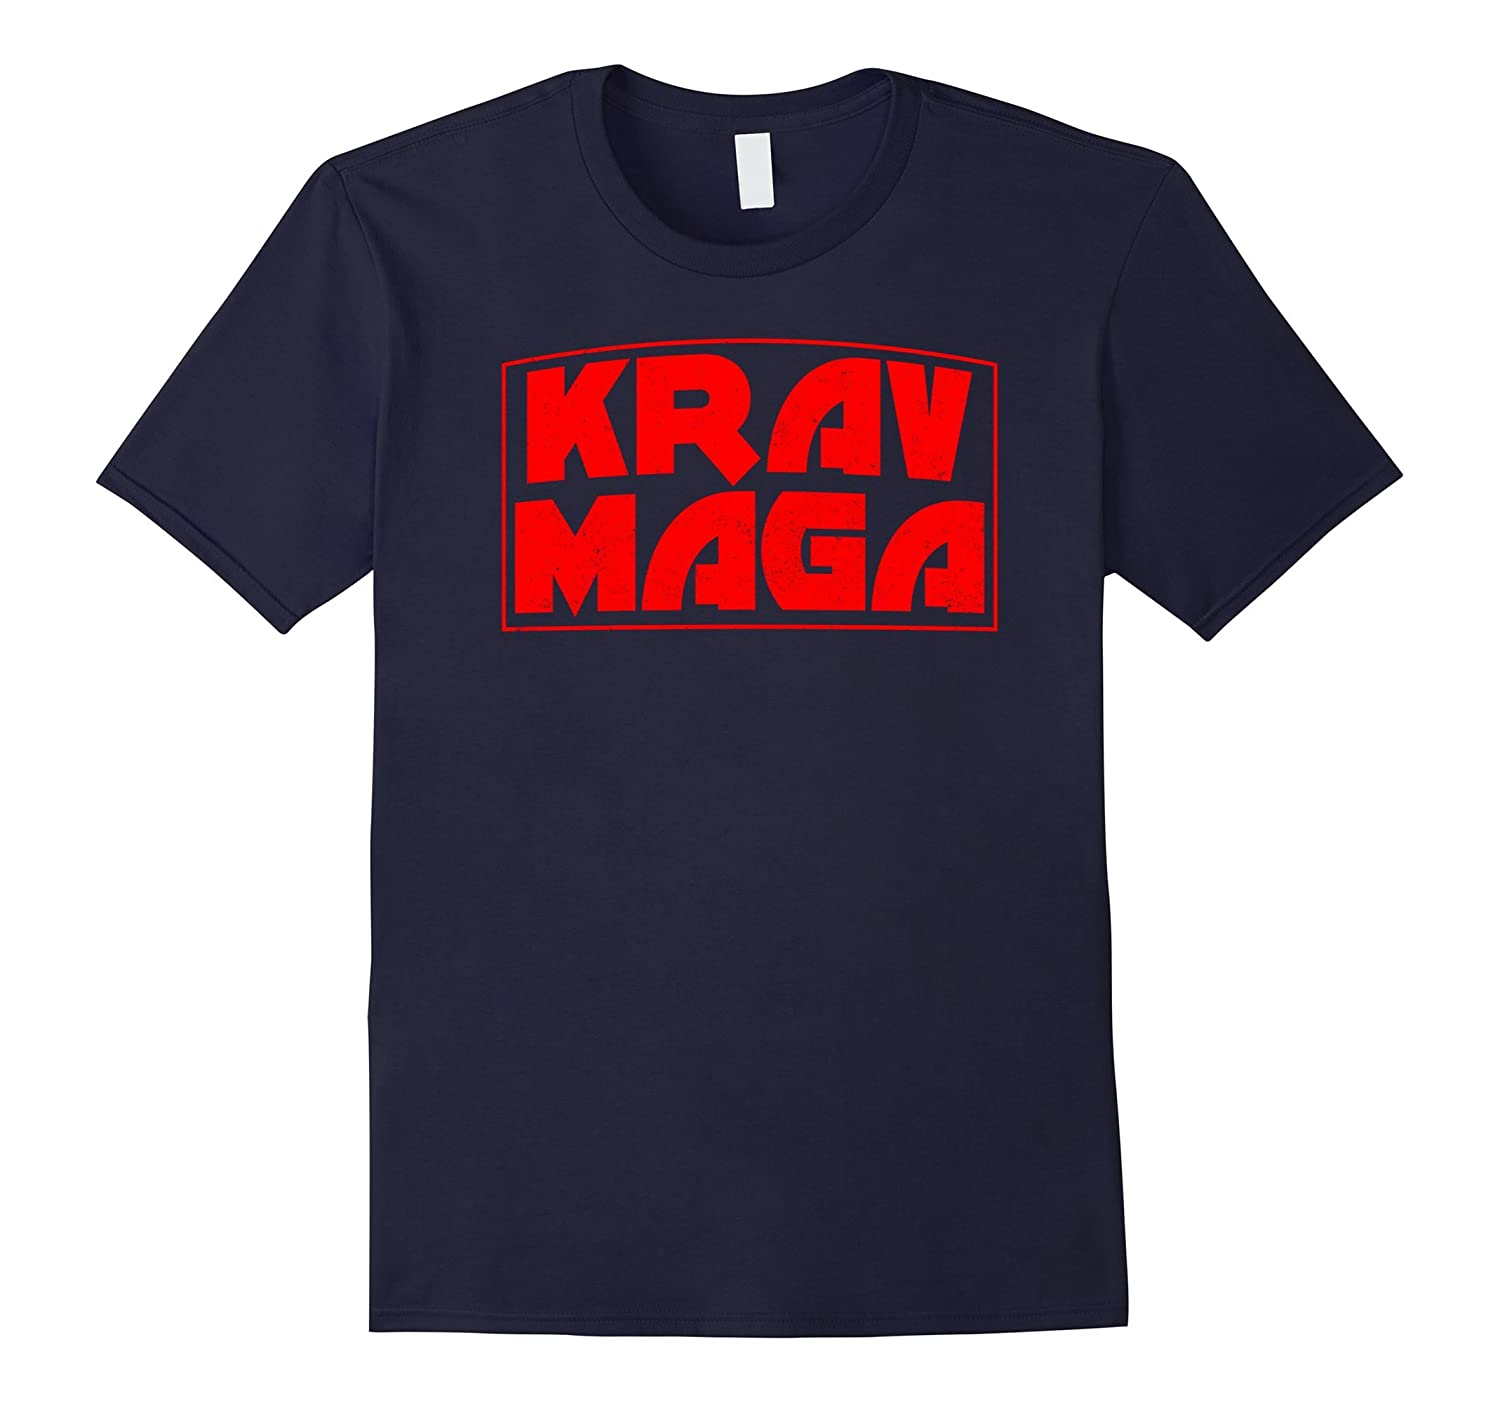 KRAV MAGA Martial Arts t-shirt distressed design-TD